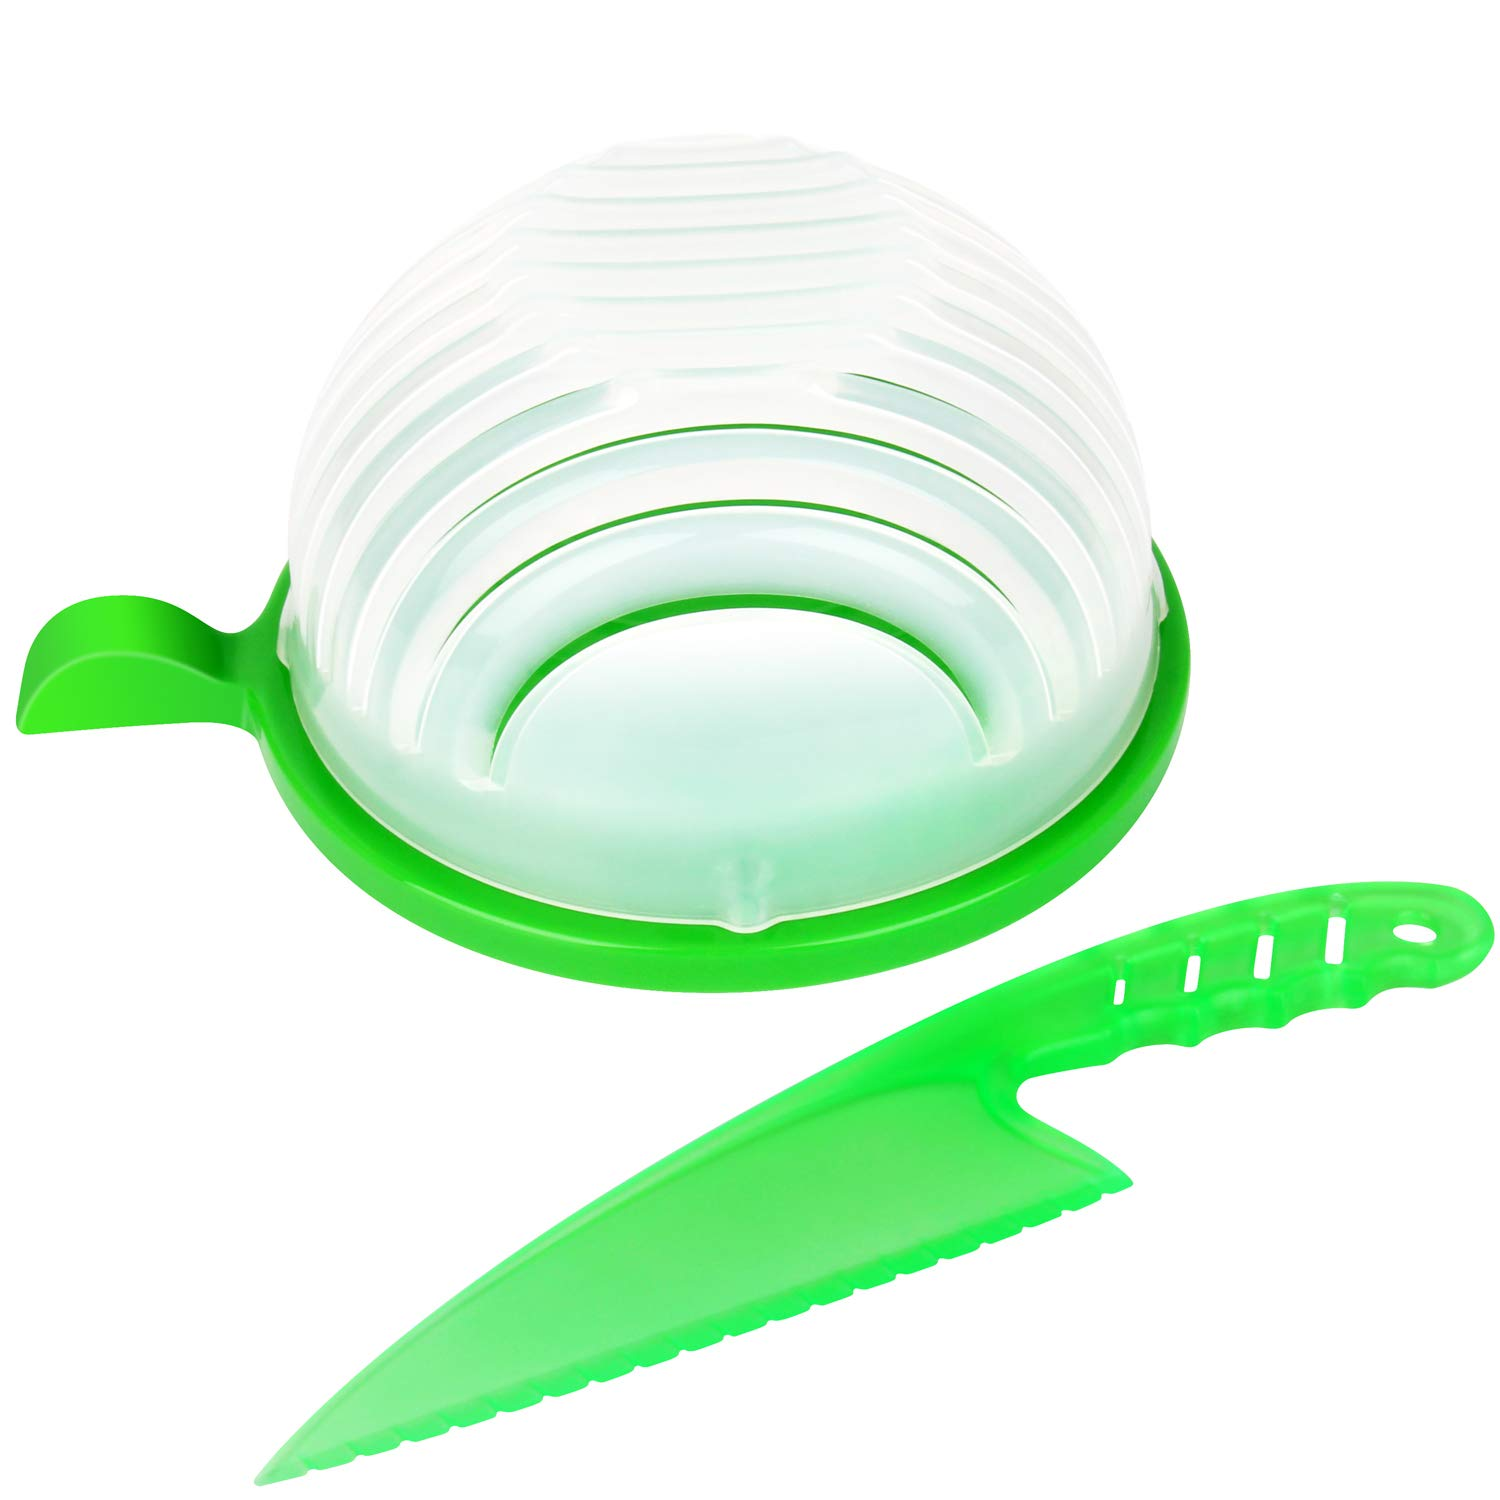 Quick Chop Salad Cutter Bowl, Easy Speed Salad Maker - Make Your Salad in 60 Seconds (salad cutter bowl) Unihoh